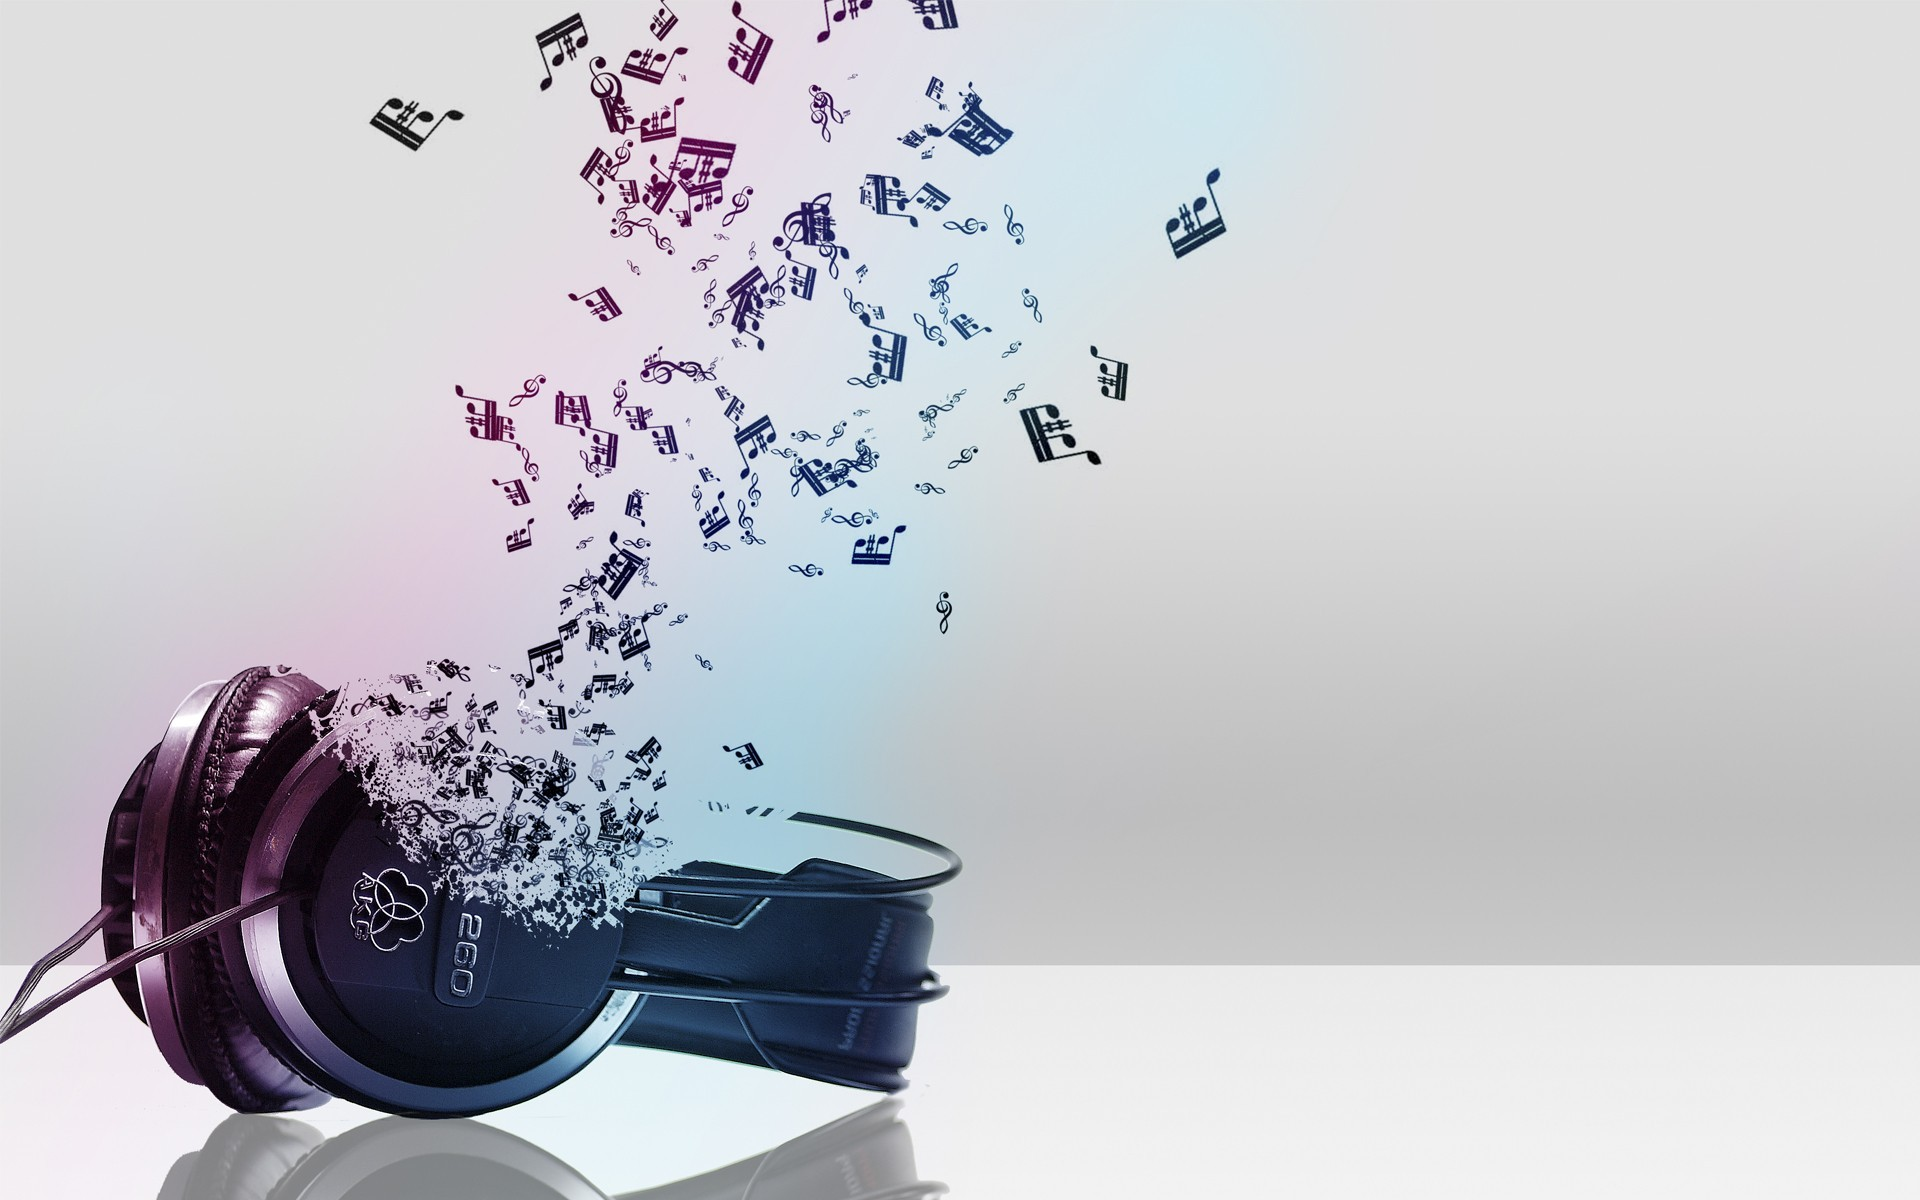 Headphones turning into musical notes Wallpaper 7234 1920x1200